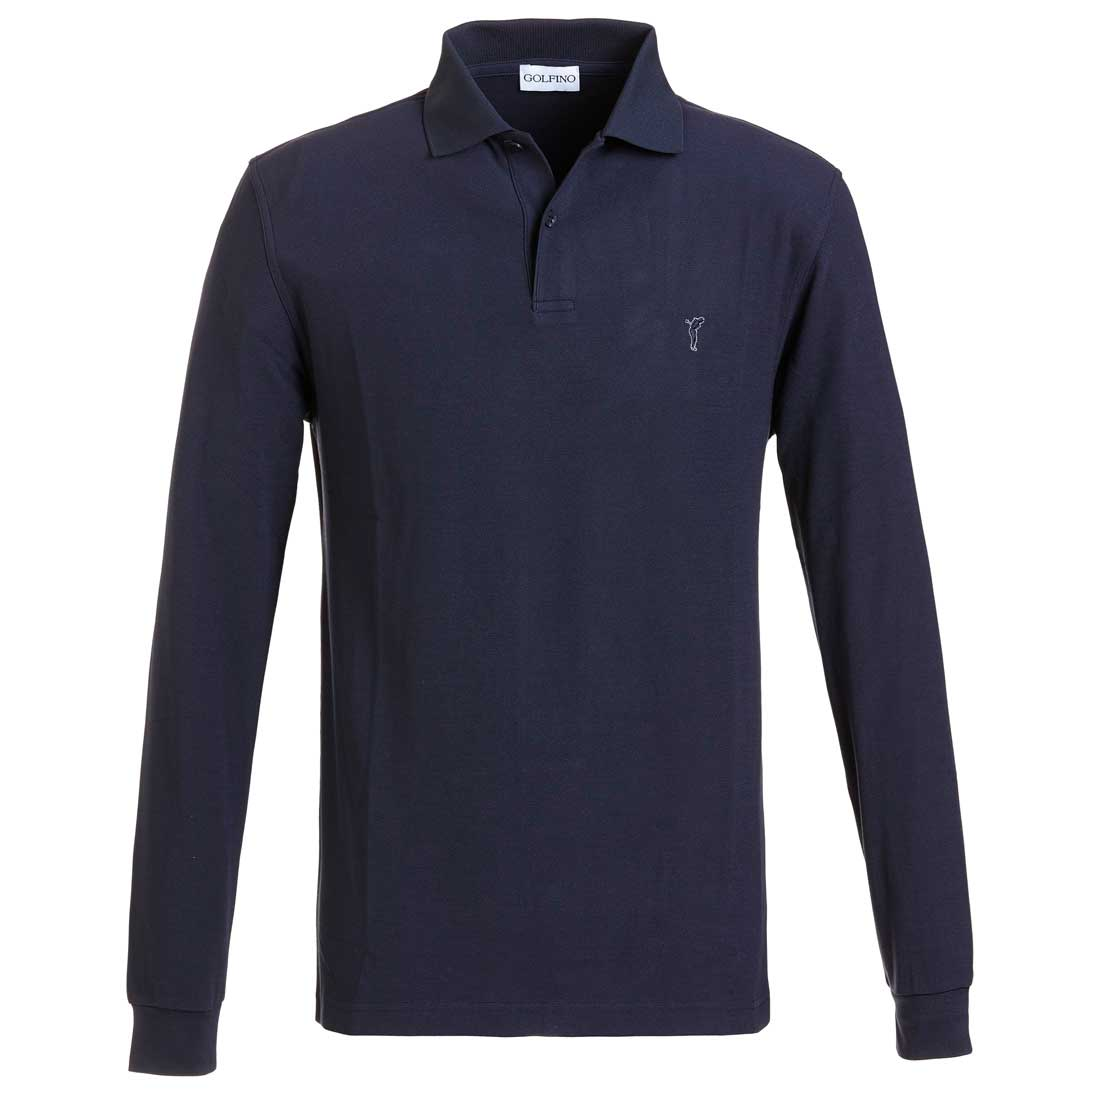 Men's long-sleeve basic golf polo with Moisture Management in regular fit